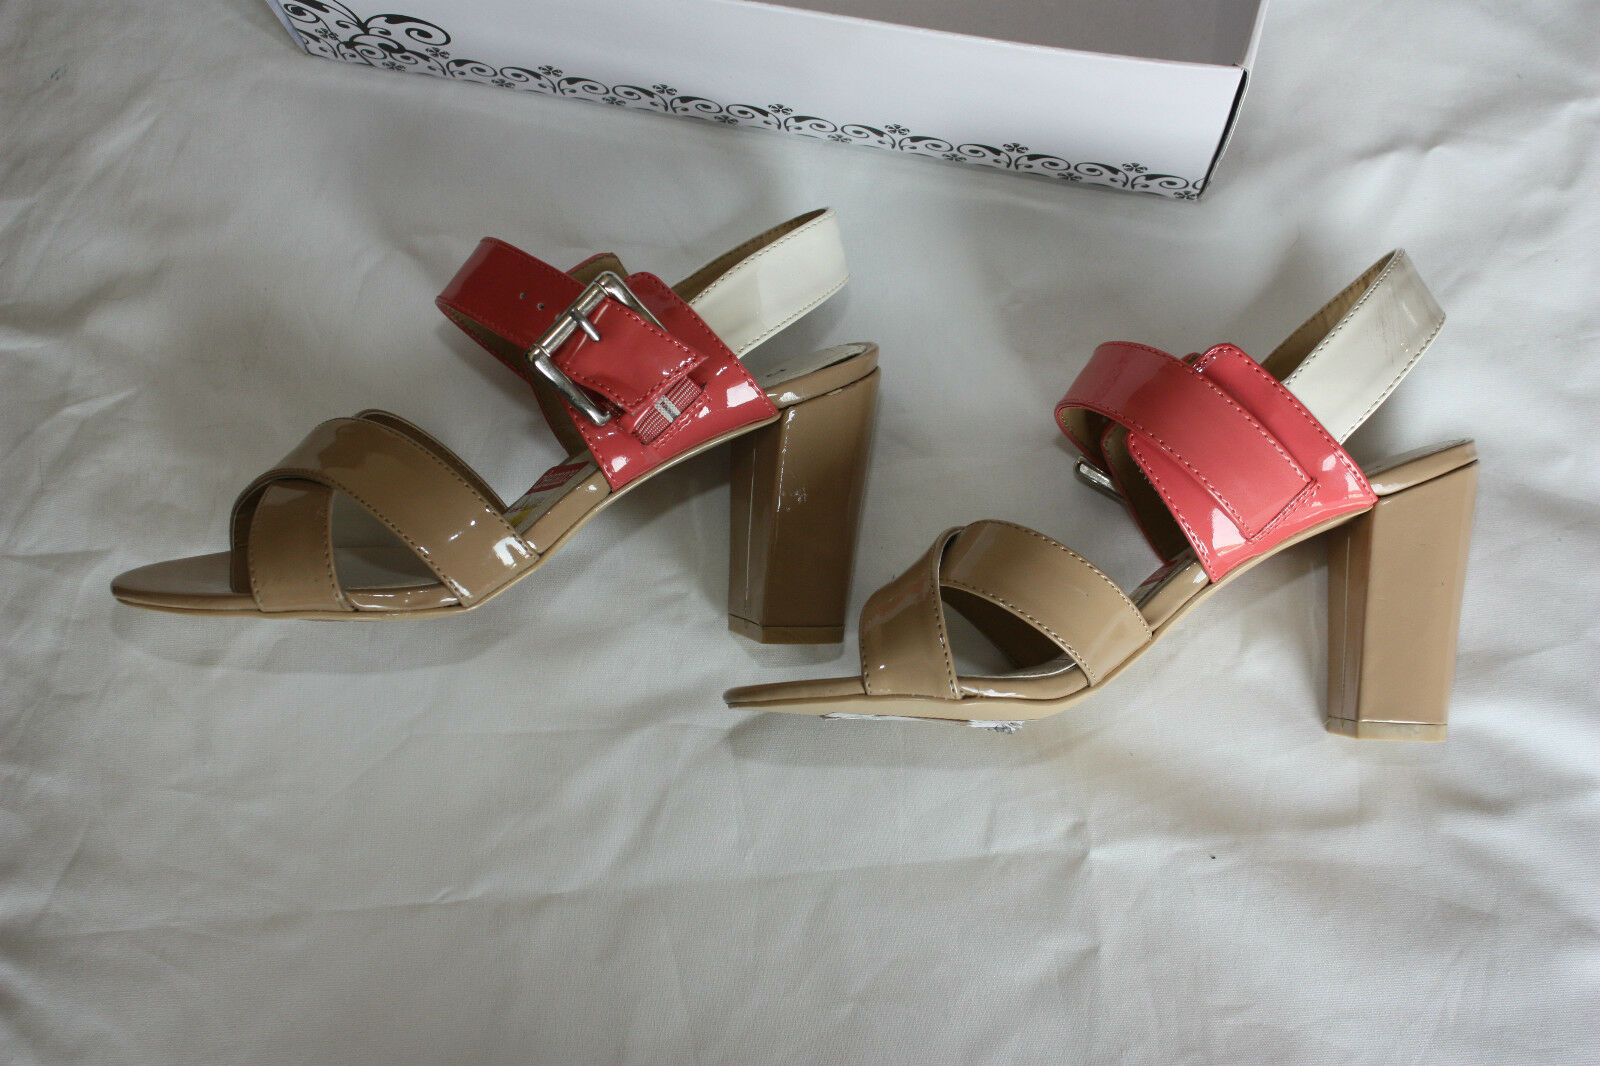 Sandals  RAMPAGE & Juliano Patent Leather Beige & RAMPAGE Pink    Size 6 M NEW NWT c4e776